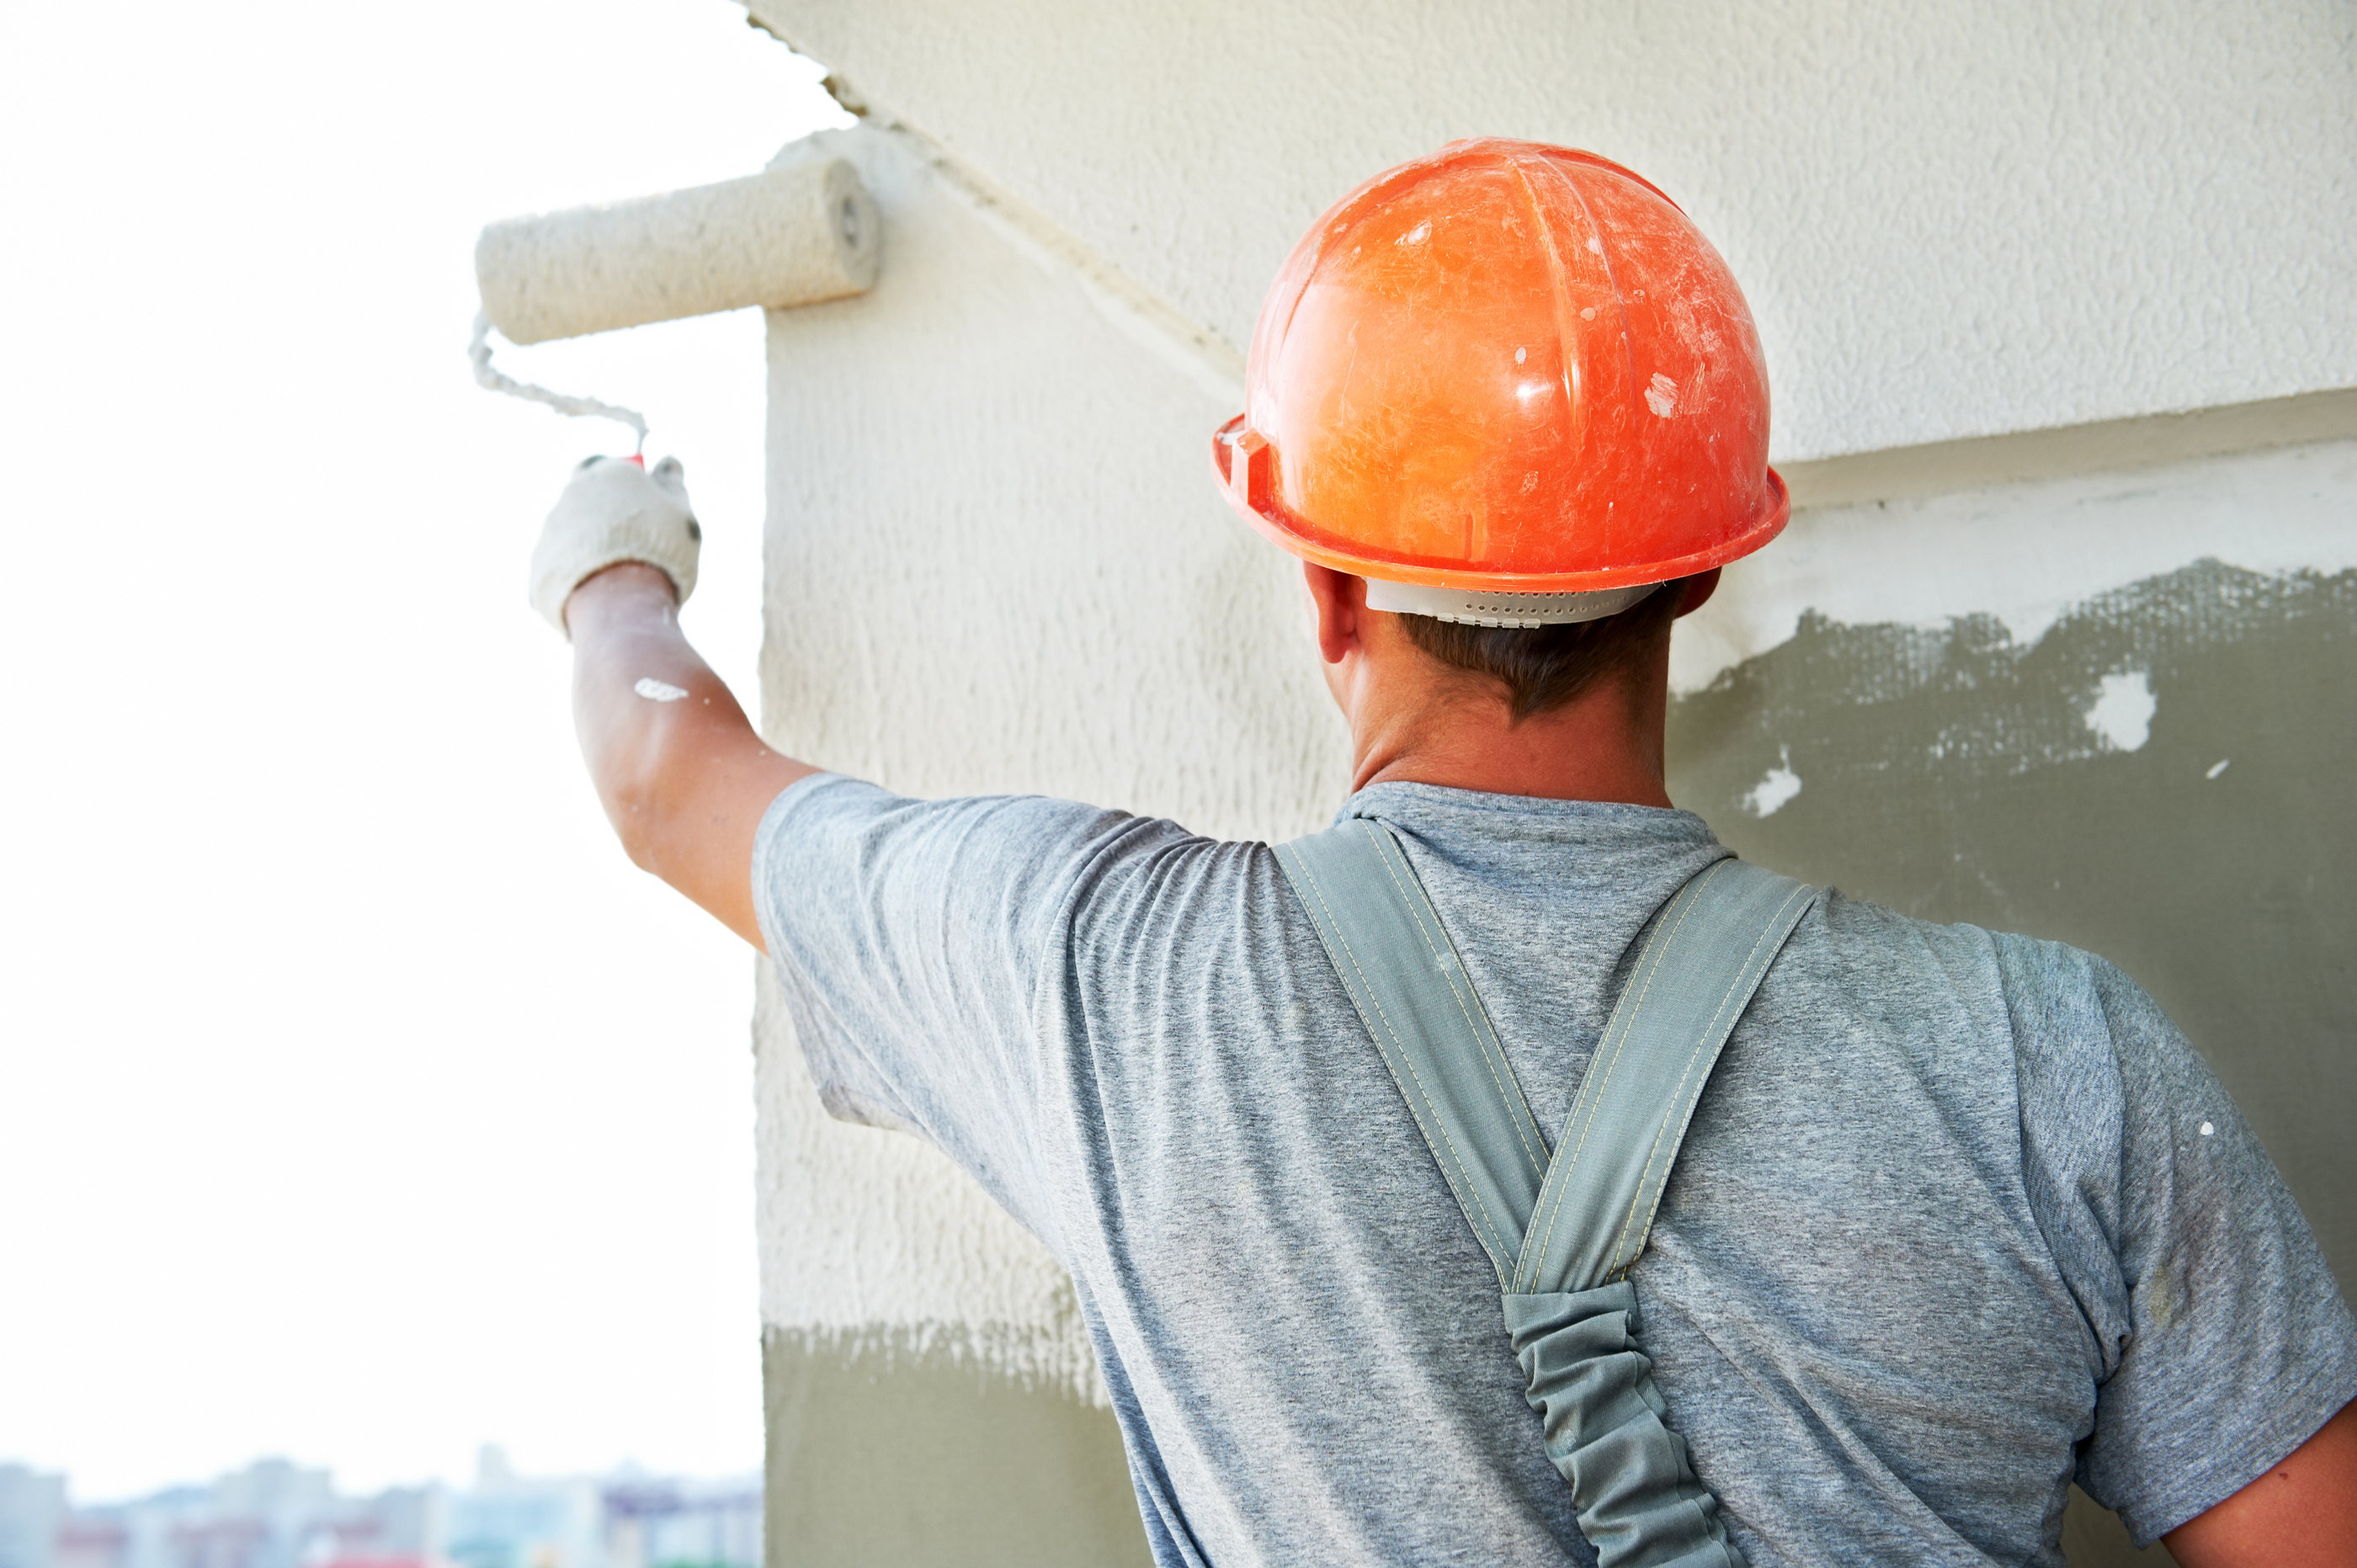 Add a Destined Look to Your Home by Hiring Professional Painters